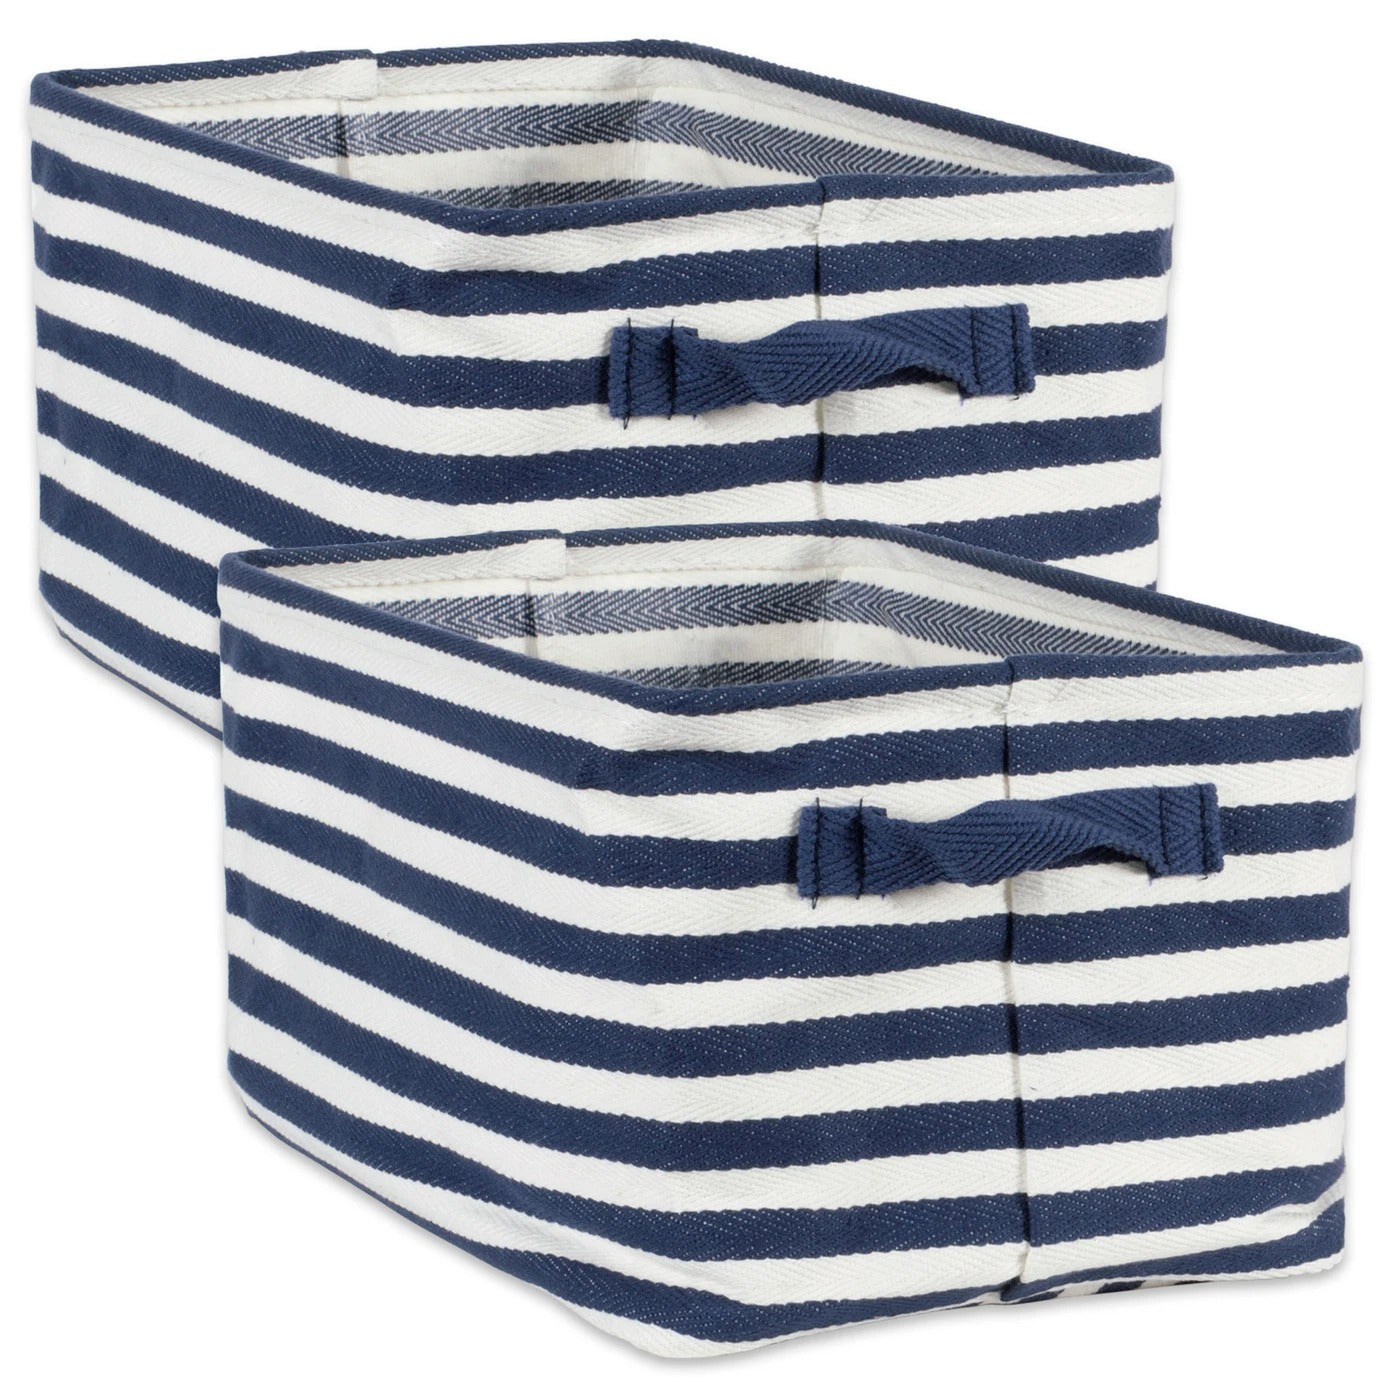 Coated Herringbone Woven Cotton Laundry Bin Stripe French Blue Rectangle, Large - Shop Basket - DARRA HOME